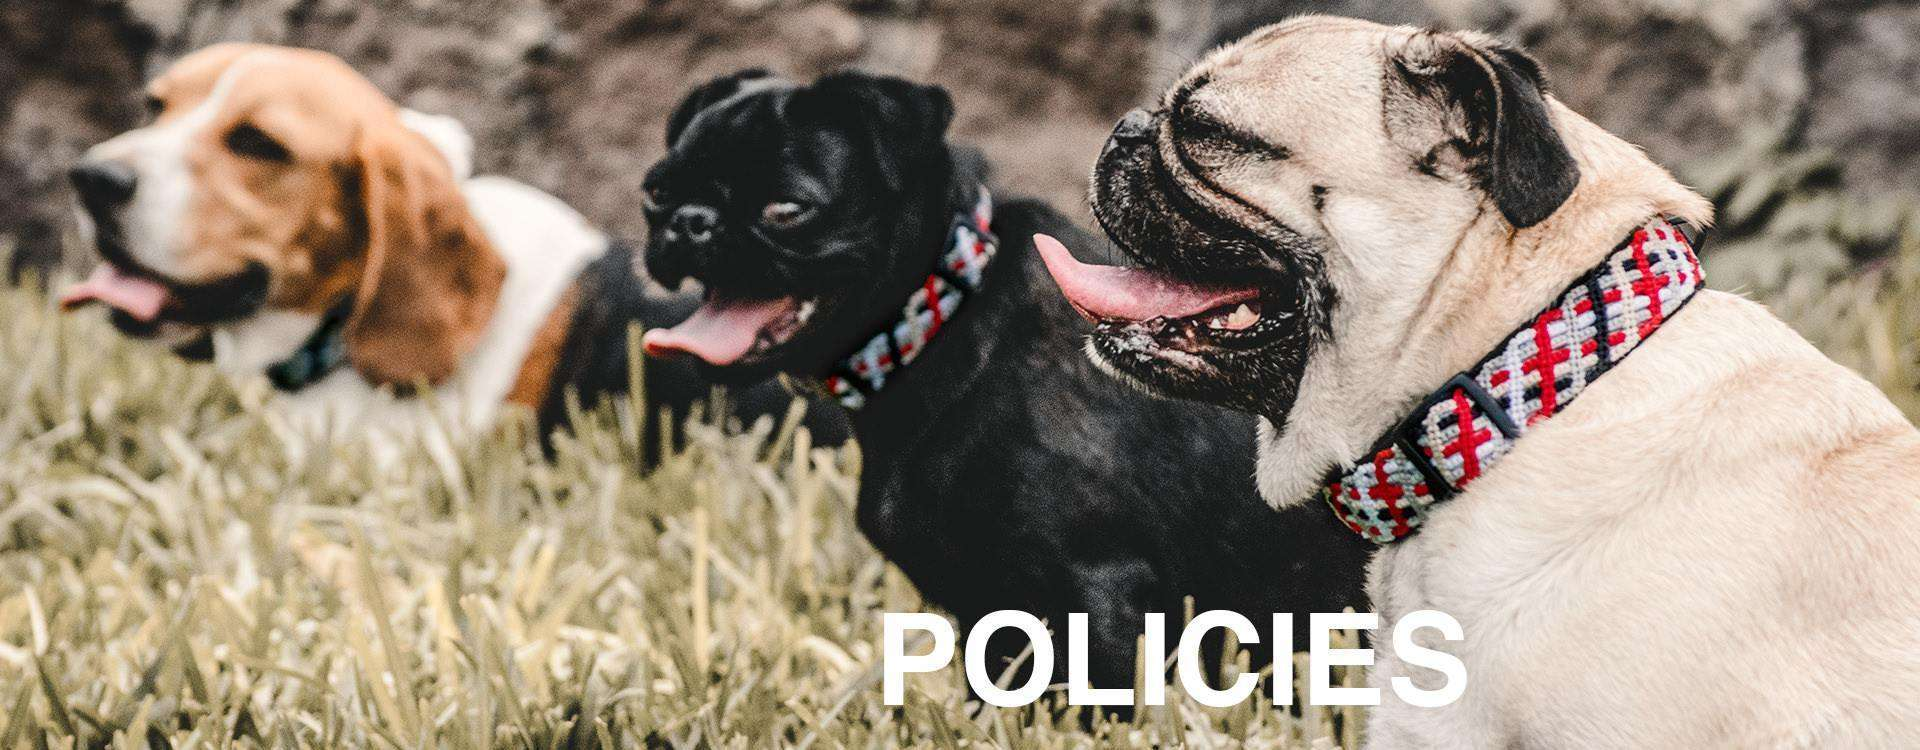 """Three dogs sit together in tall grass while wearing ethically made outdoor dog collars and overlaid text: """"POLICIES"""""""